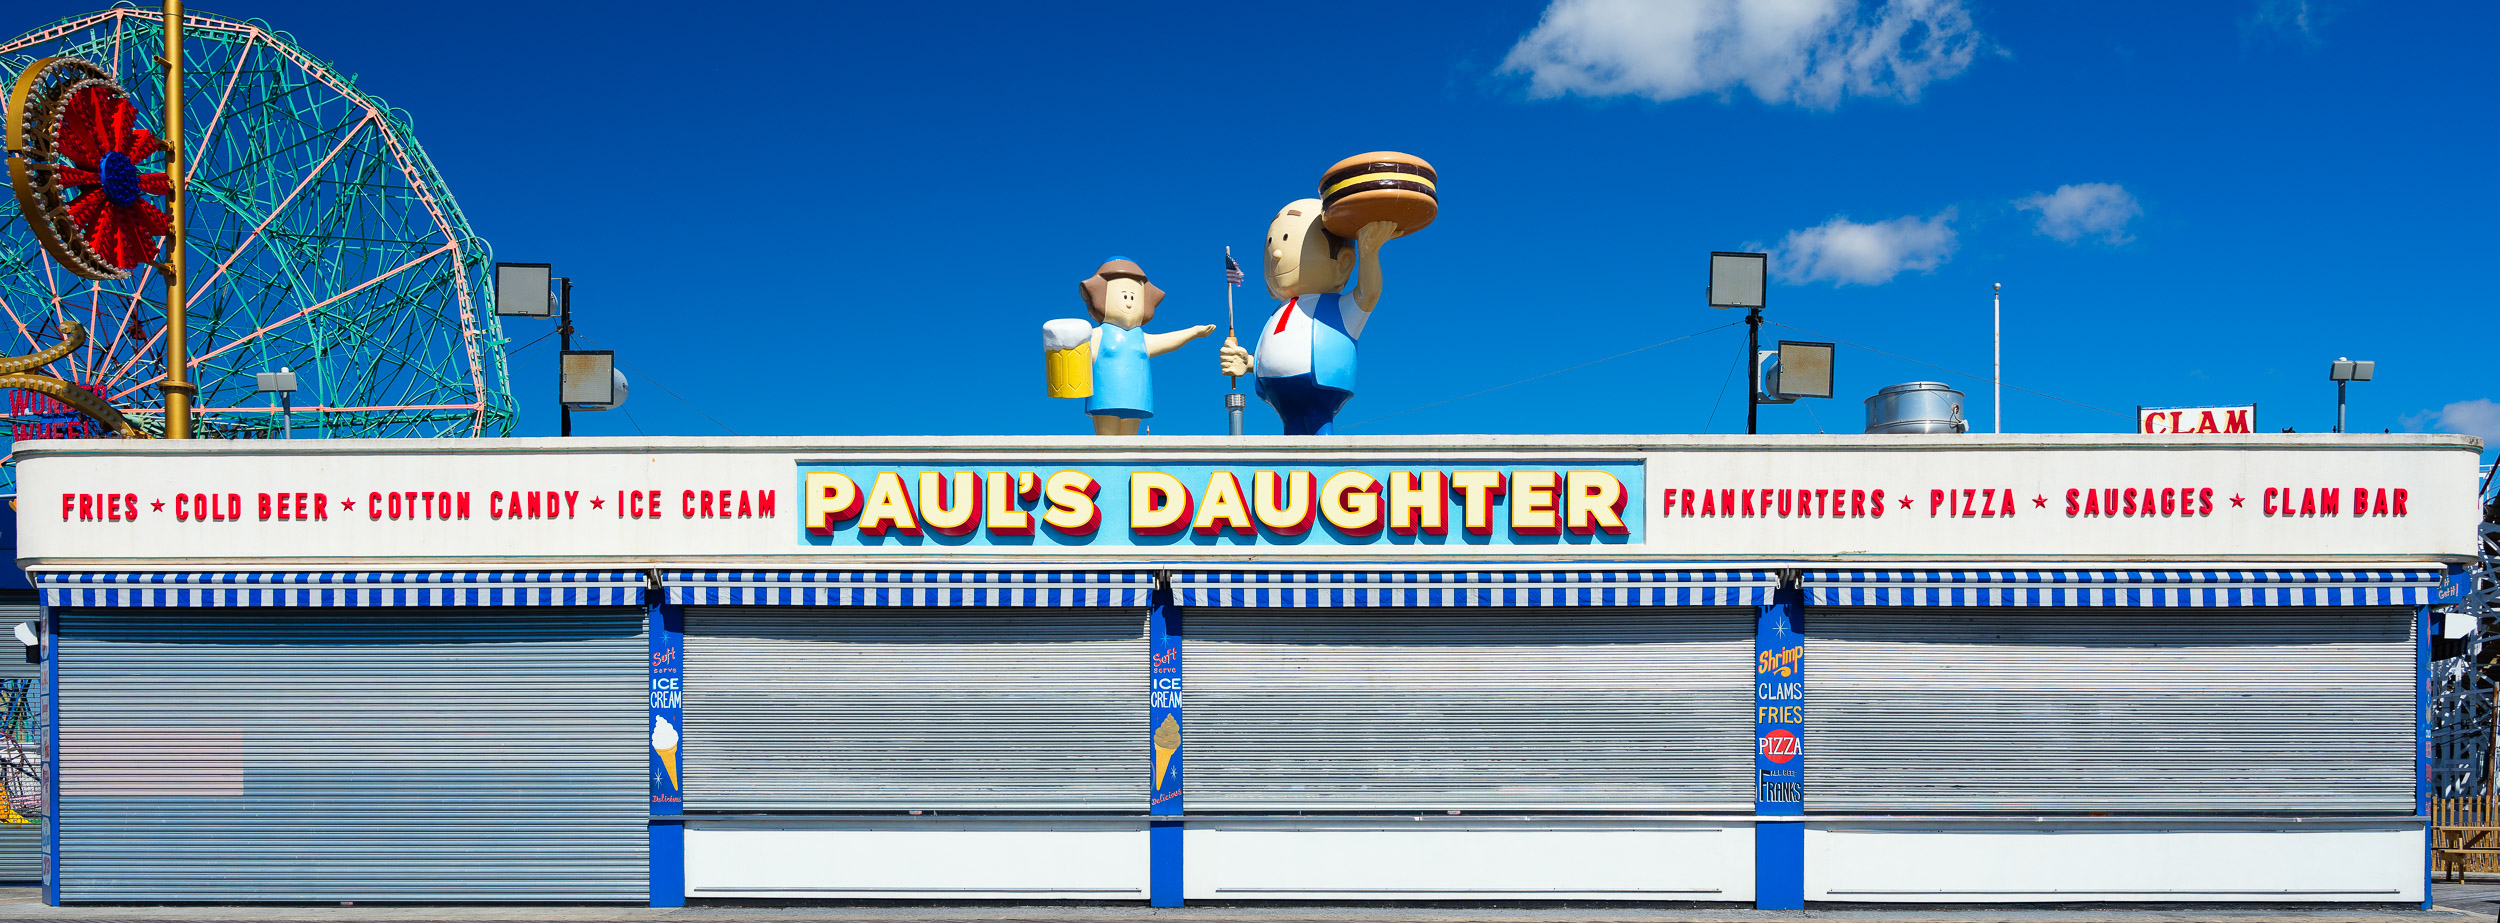 Paul's Daughter restaurant